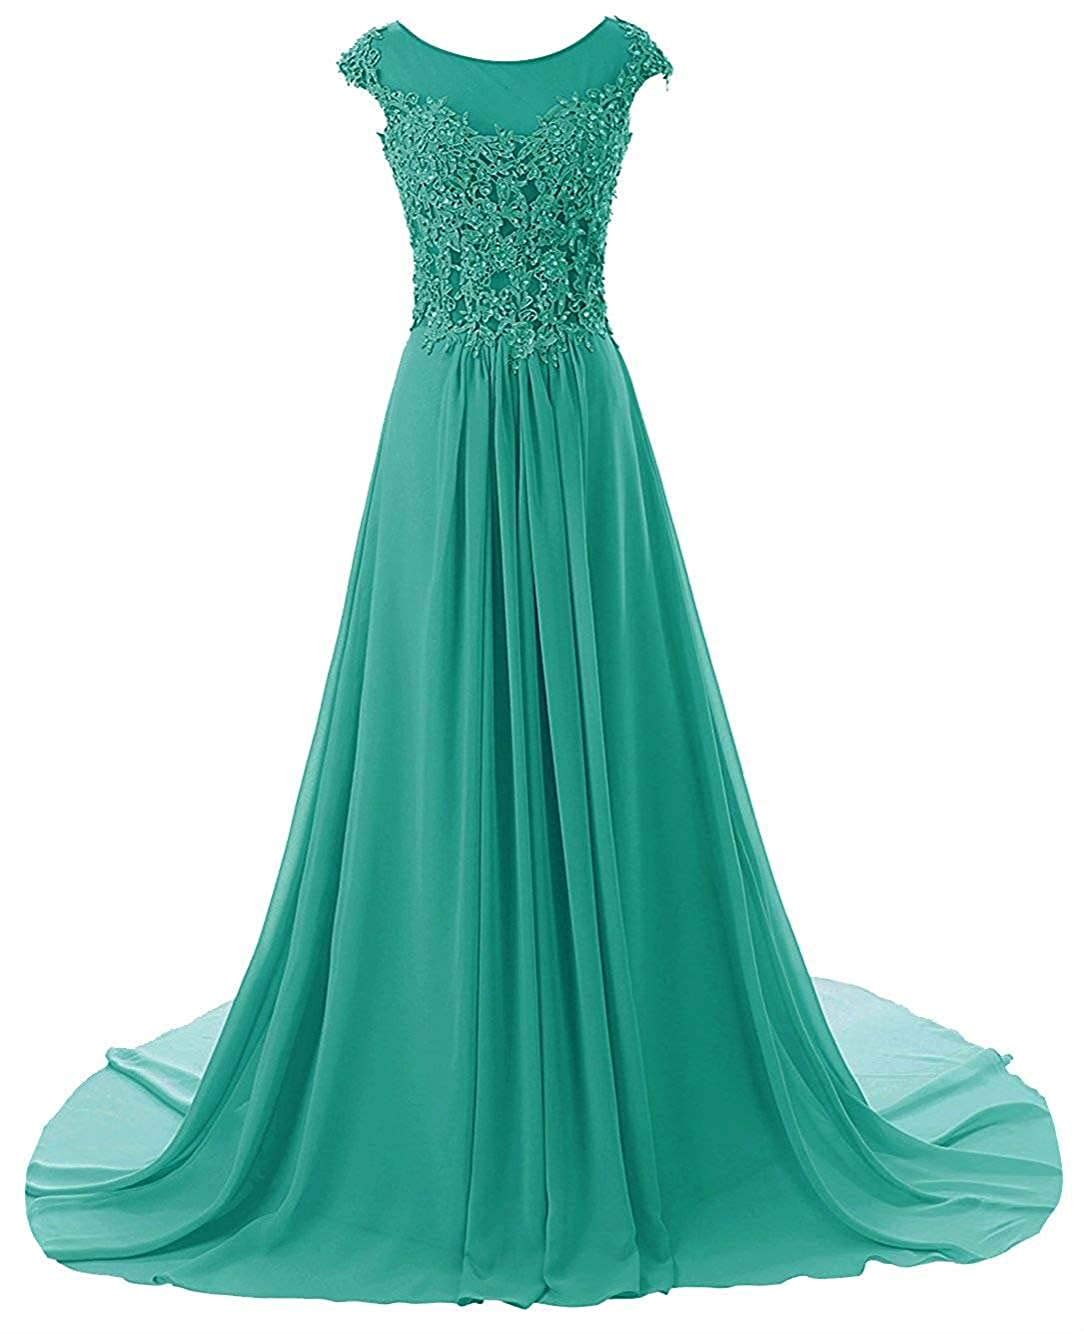 Dark Turquoise Wanshaqin Women's Aline Lace Appliques Evening Party Cocktail Dresses Bridesmaid Gowns Prom Formal Dresses for Events Party